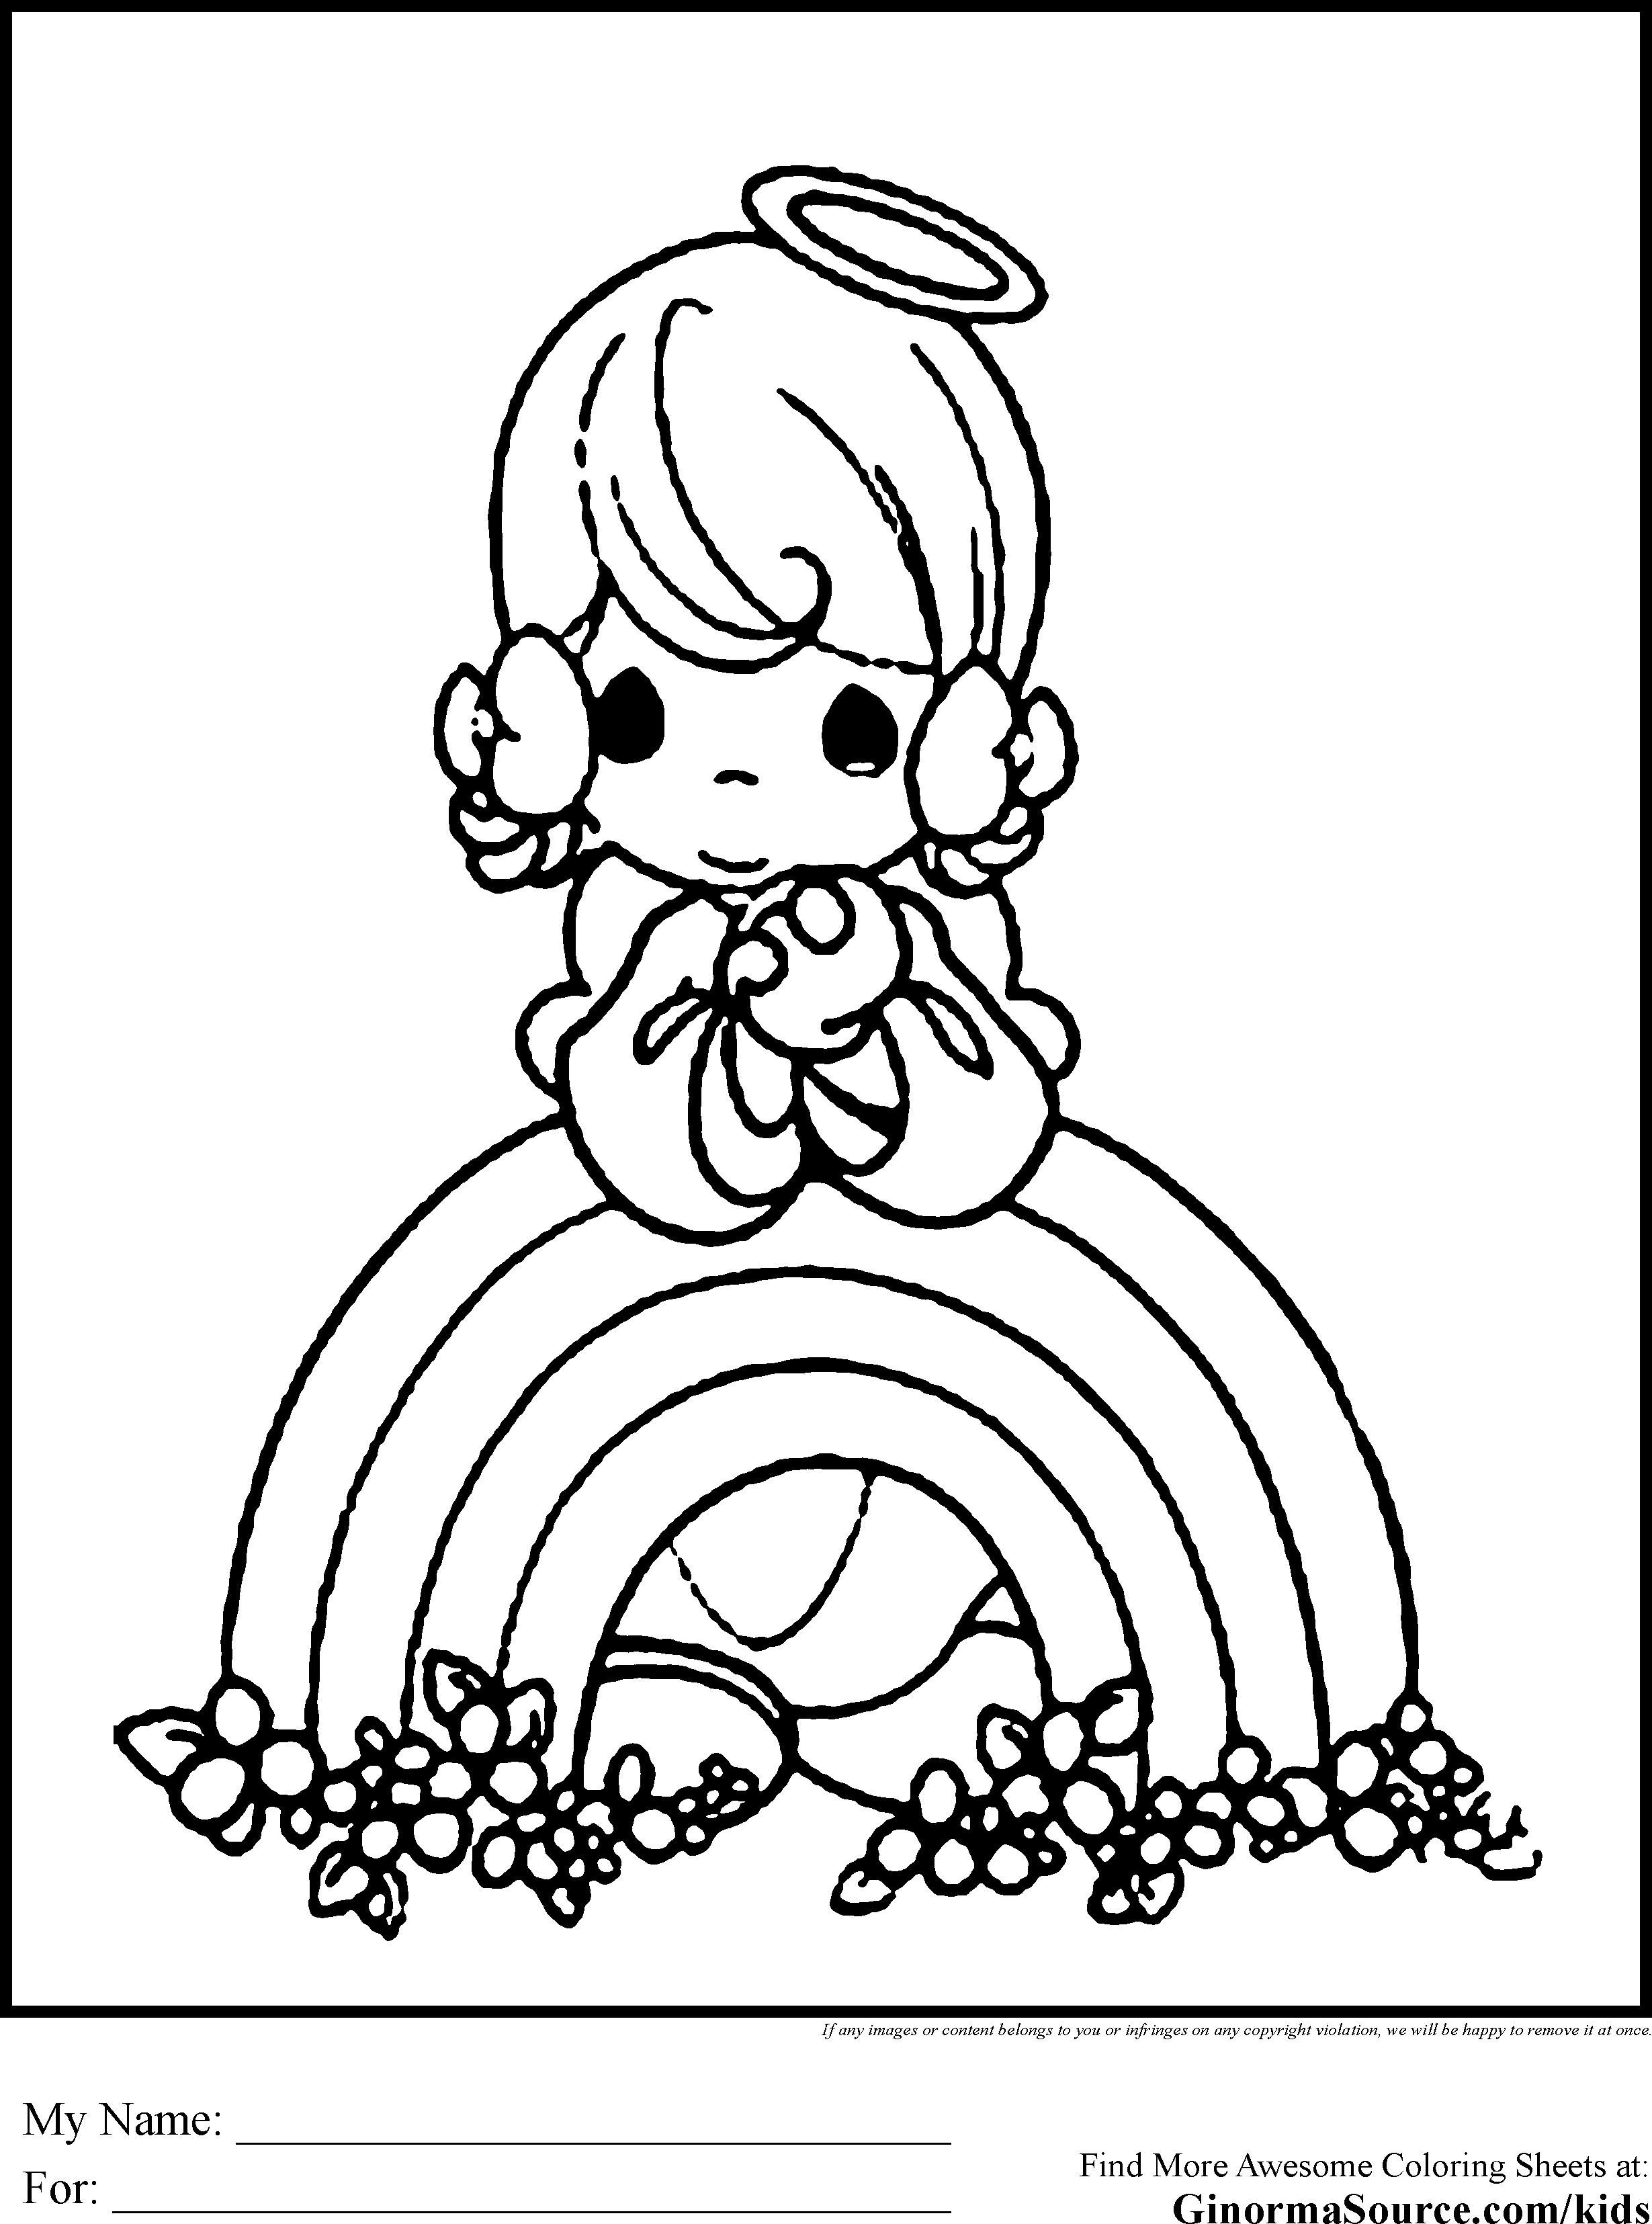 42 Coloring Pictures That You Can Print Cute Coloring Pages Valentine Coloring Pages Precious Moments Coloring Pages